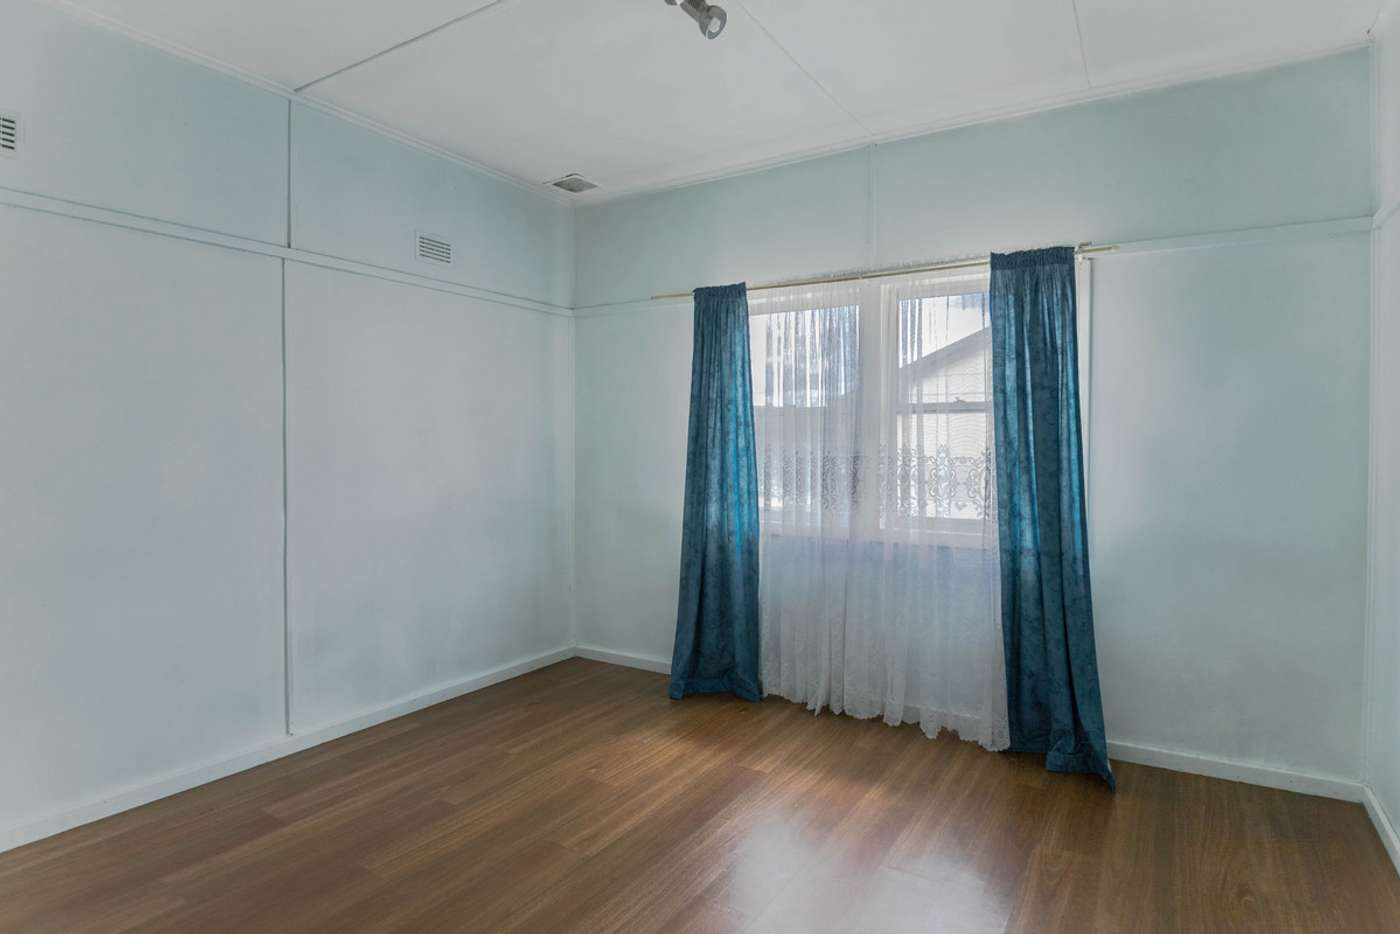 Sixth view of Homely house listing, 29 Oxley Street, Wallerawang NSW 2845